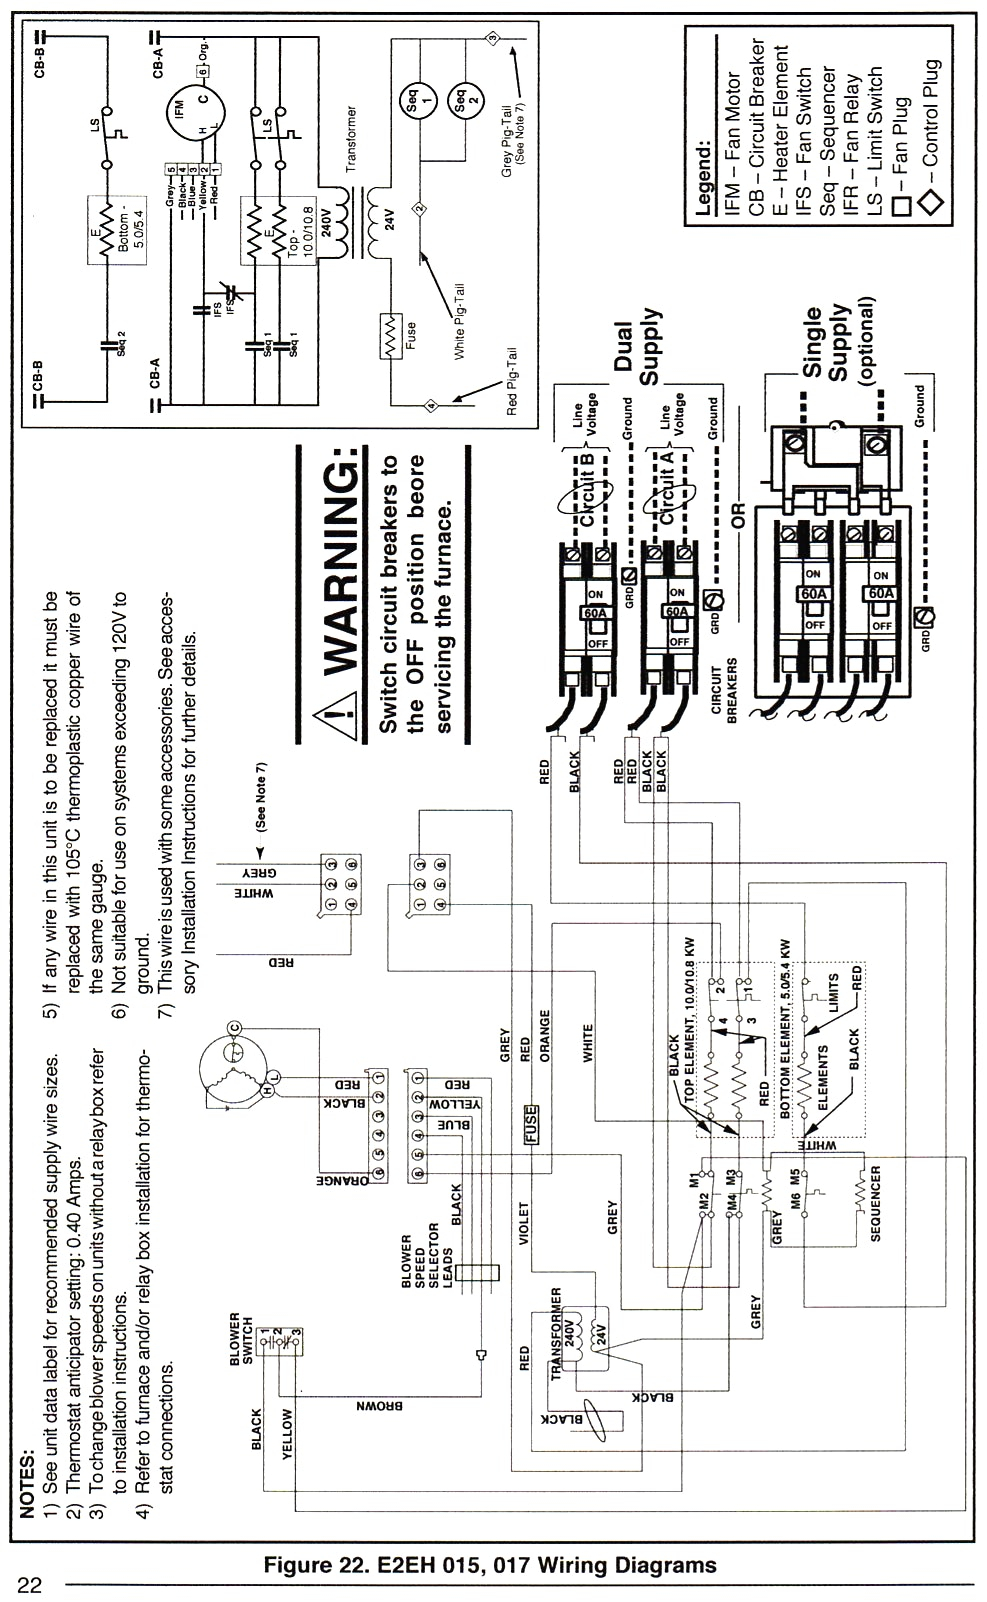 medium resolution of intertherm heat pump wiring diagram wiring diagram load heat nordyne diagram wiring pump modlegqf090100324 wiring diagram